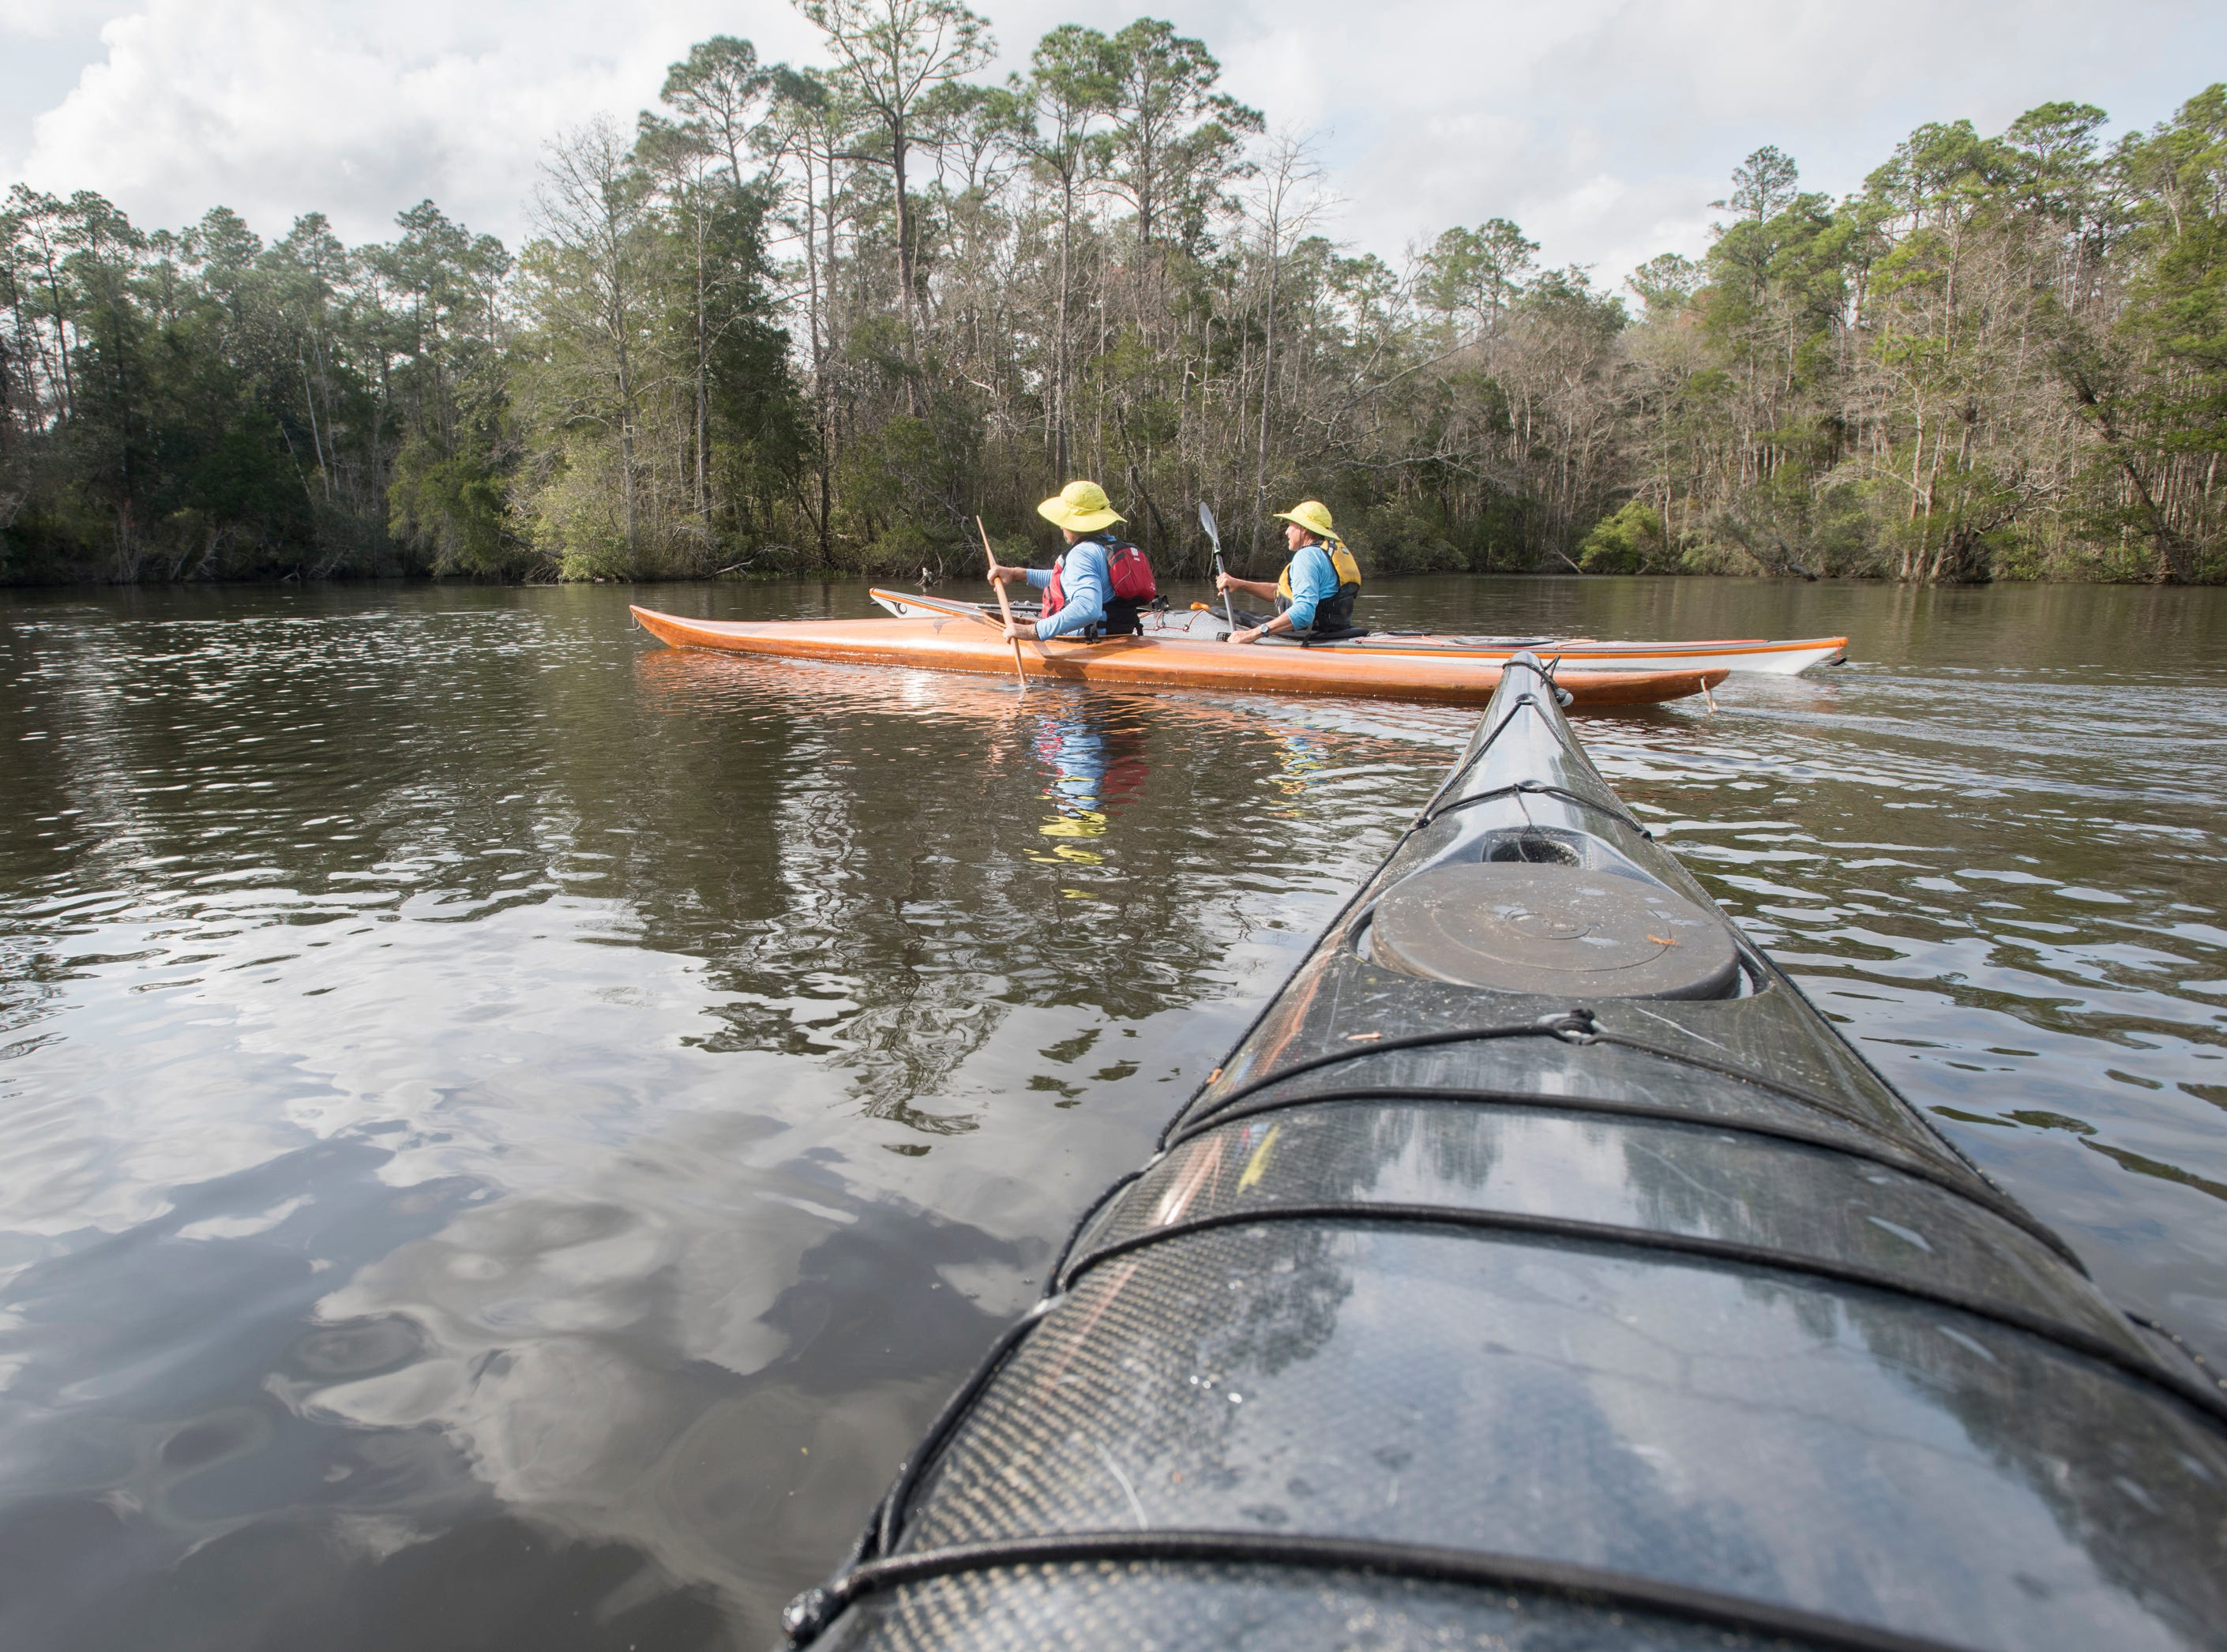 Guerry Bradley, of St. Augustine, left, and Paul Gelderblom, of Charlevoix, Michigan, kayak on the Perdido River near the Wilson Robertson Boat Ramp in Pensacola on Monday, March 11, 2019.  Paddle Florida is hosting 60 paddlers on a 5-day, 60-mile journey from Otto Hill to Perdido Pass.  Florida is currently working with Alabama to establish a paddling trail on the Perdido River.